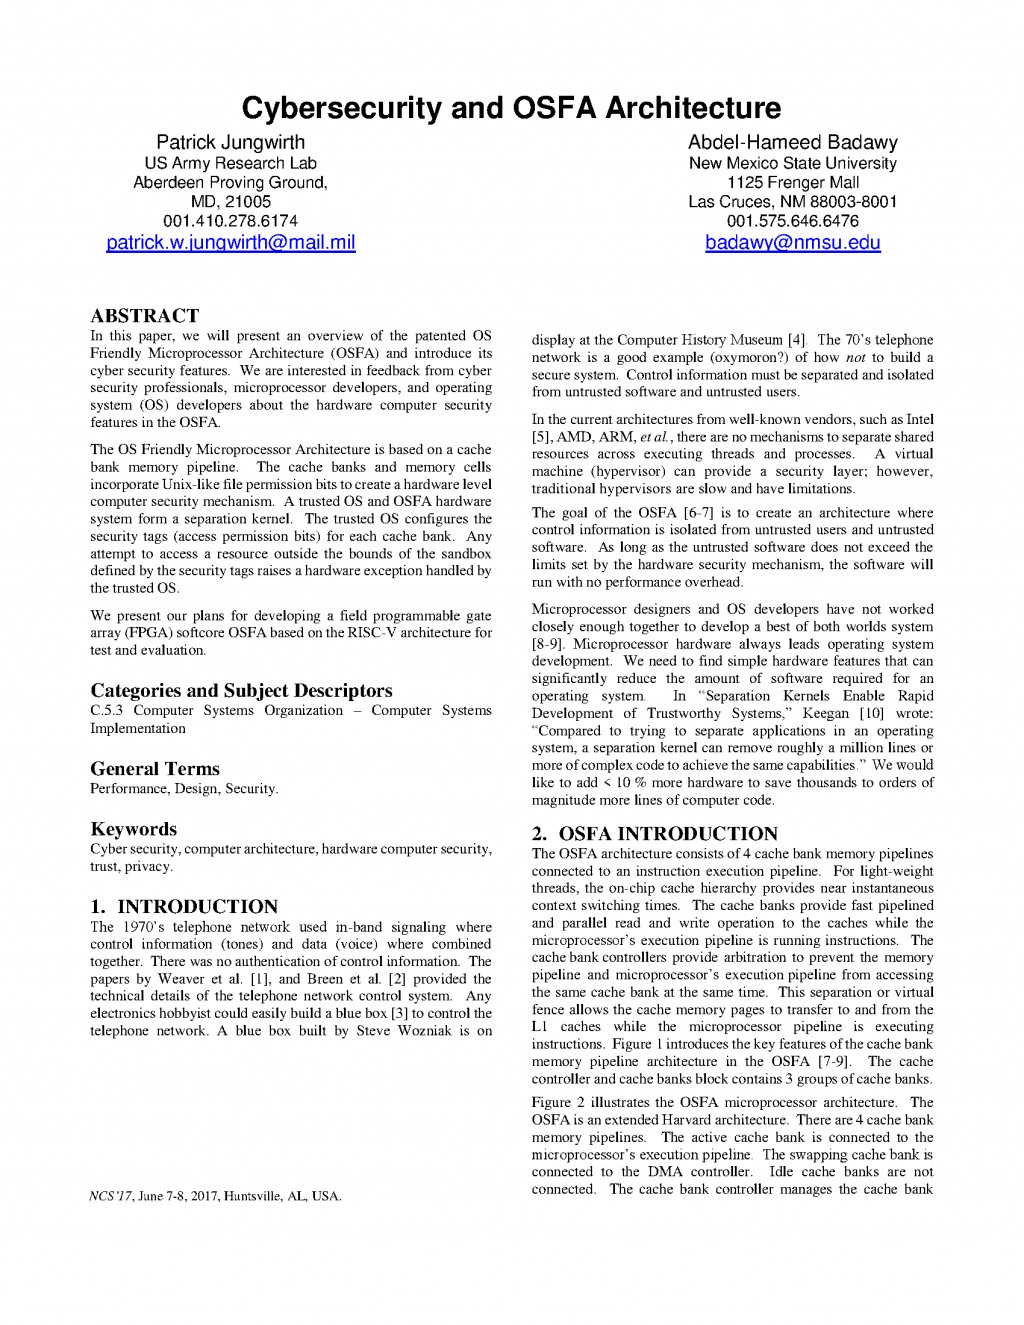 008 Cyber Security Research Papers Pdf Paper Wondrous 2017 Large